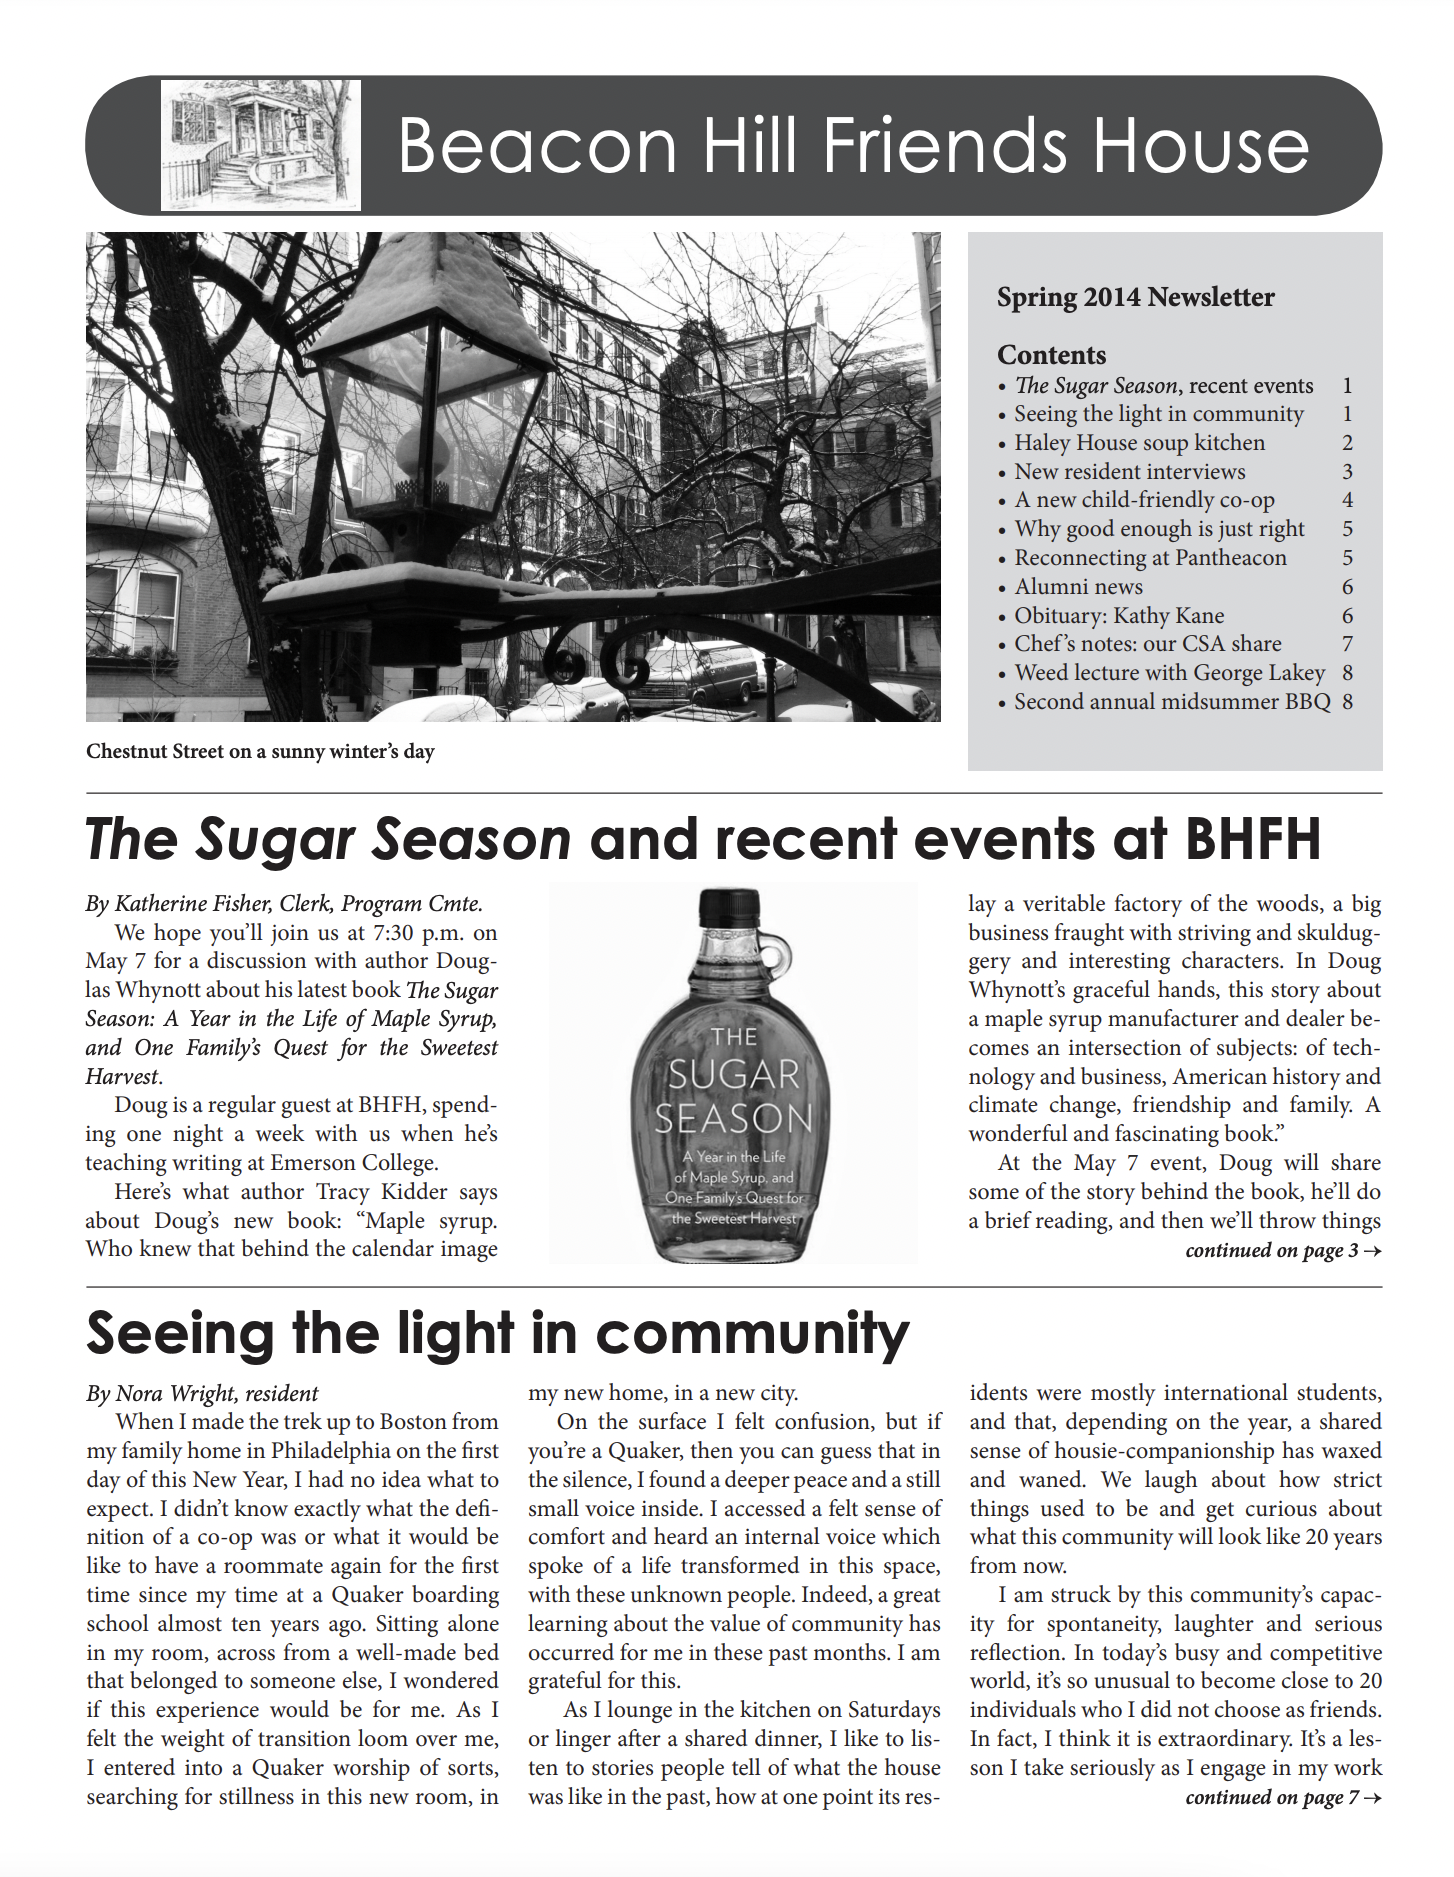 First page of spring/summer 2014 newsletter